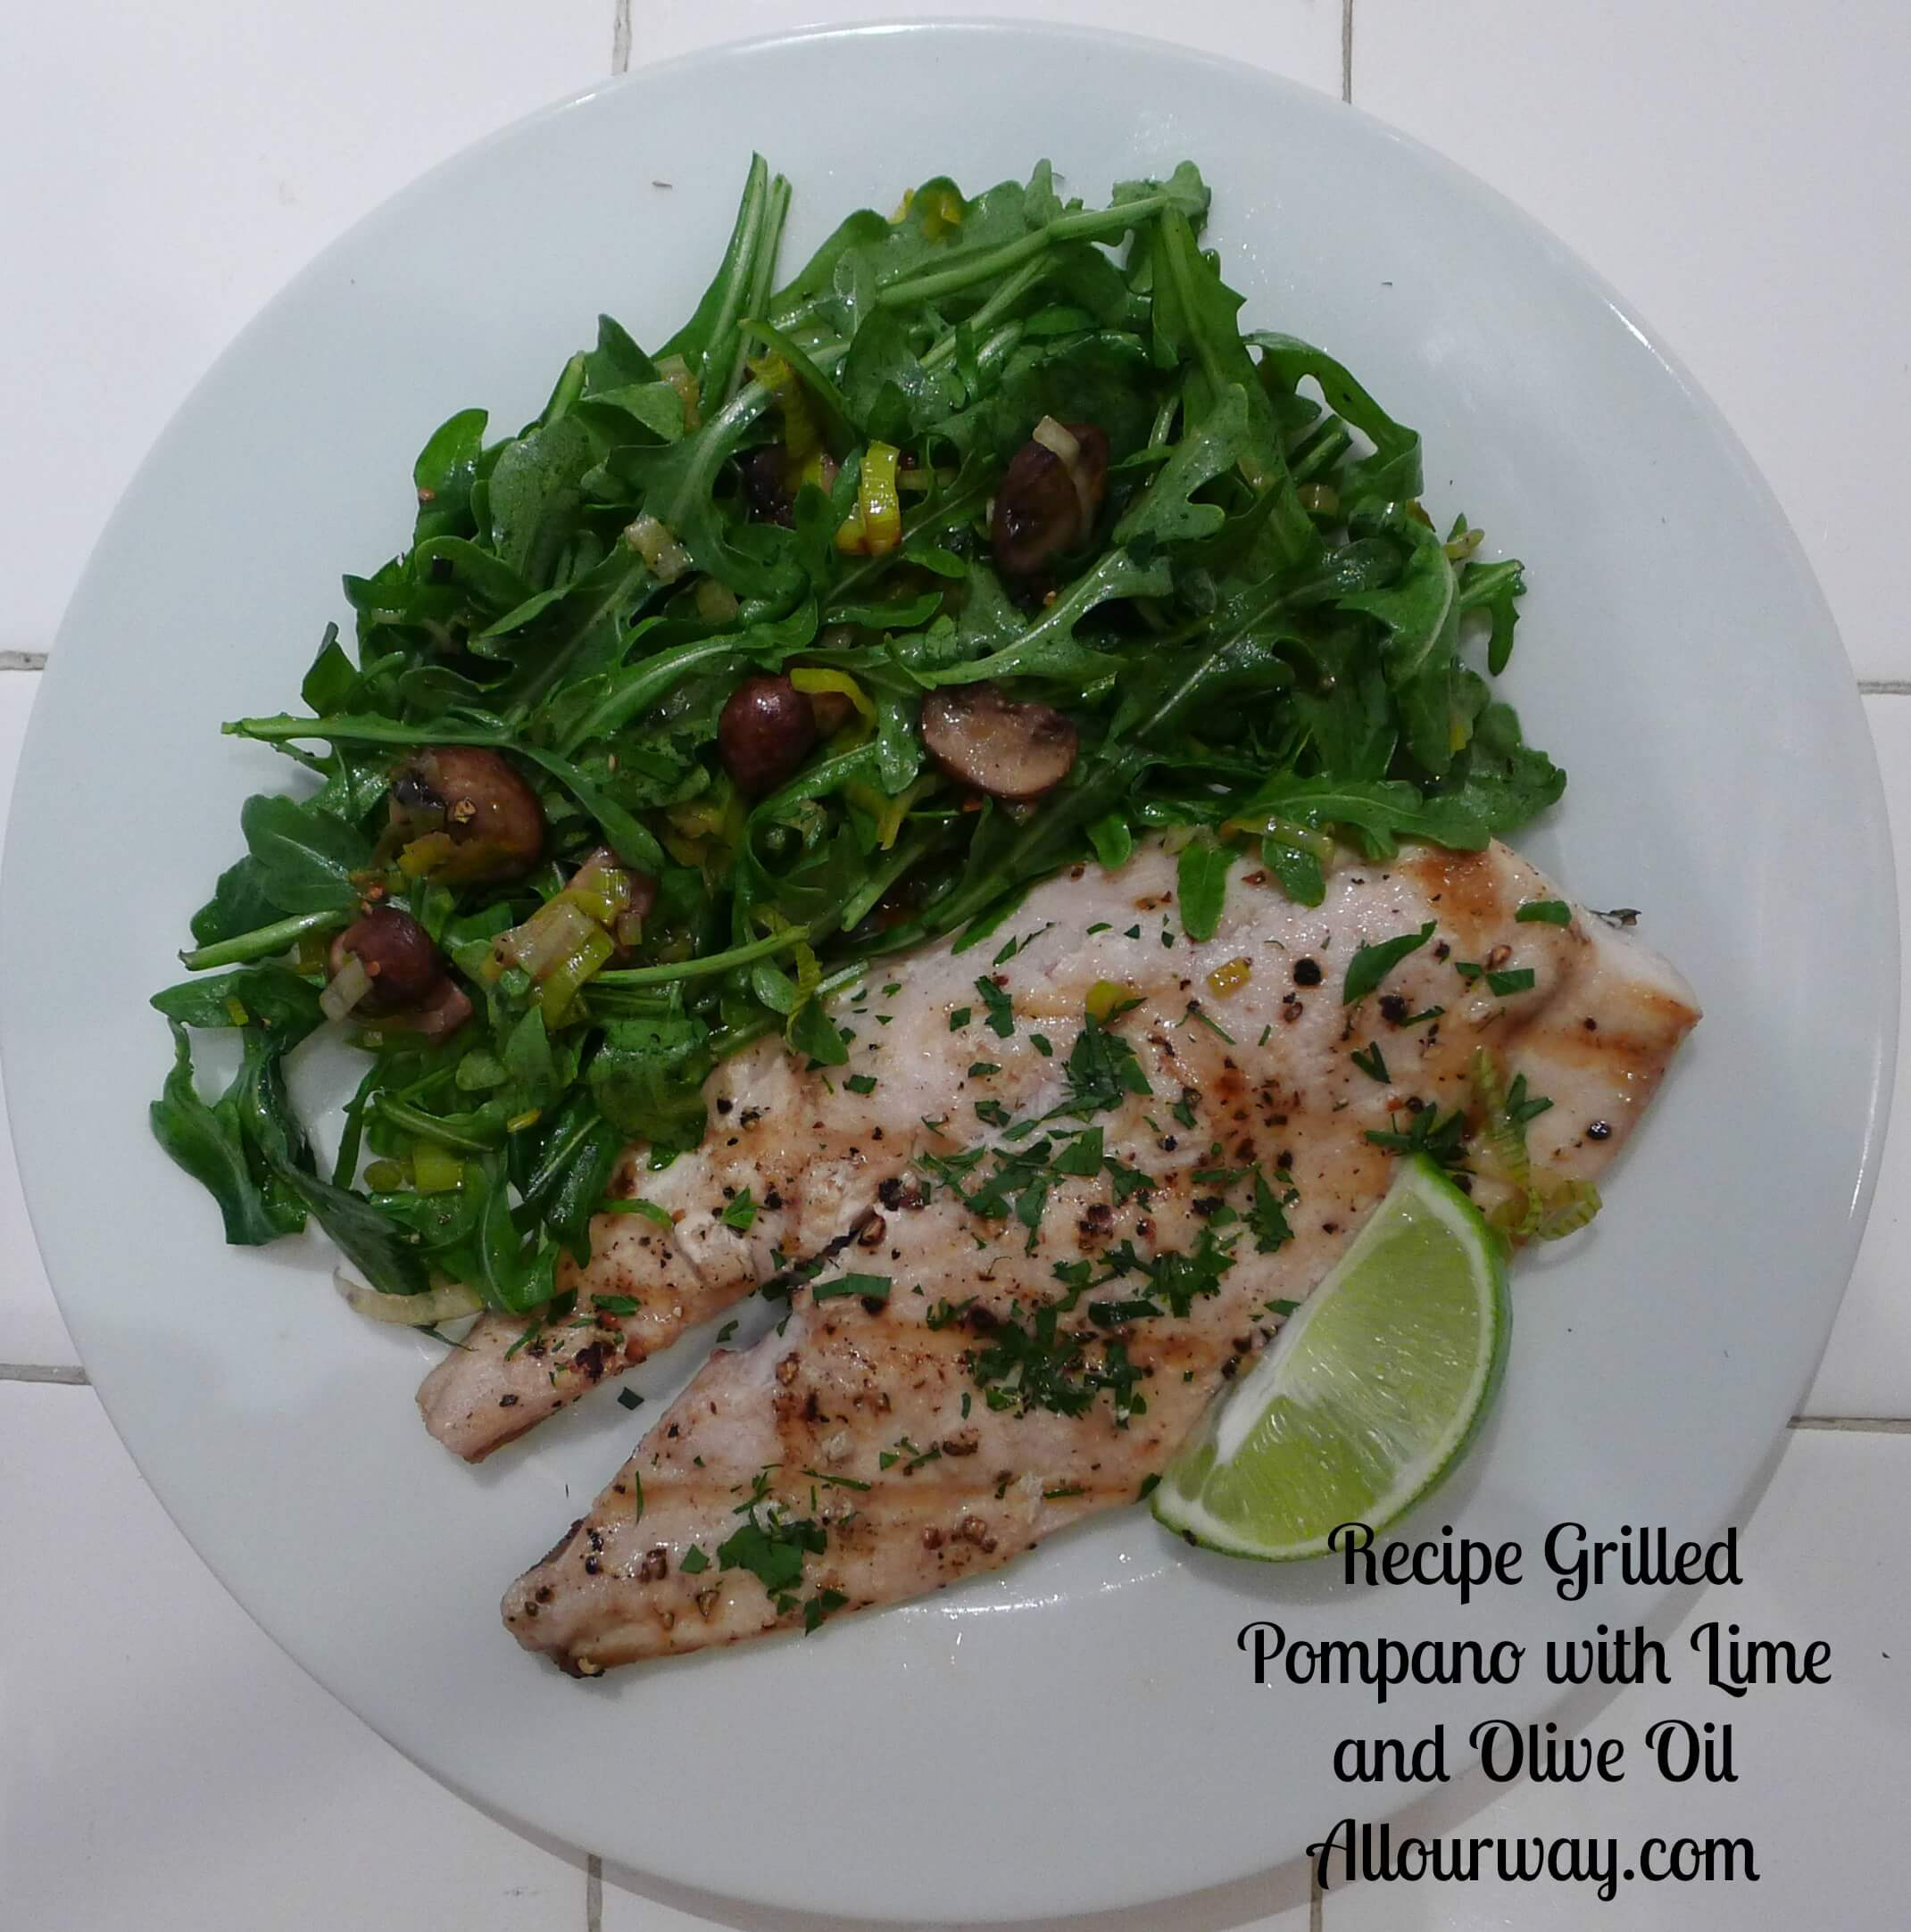 Jason's Pompano Grilled with Lime and Extra-Virgin Olive Oil